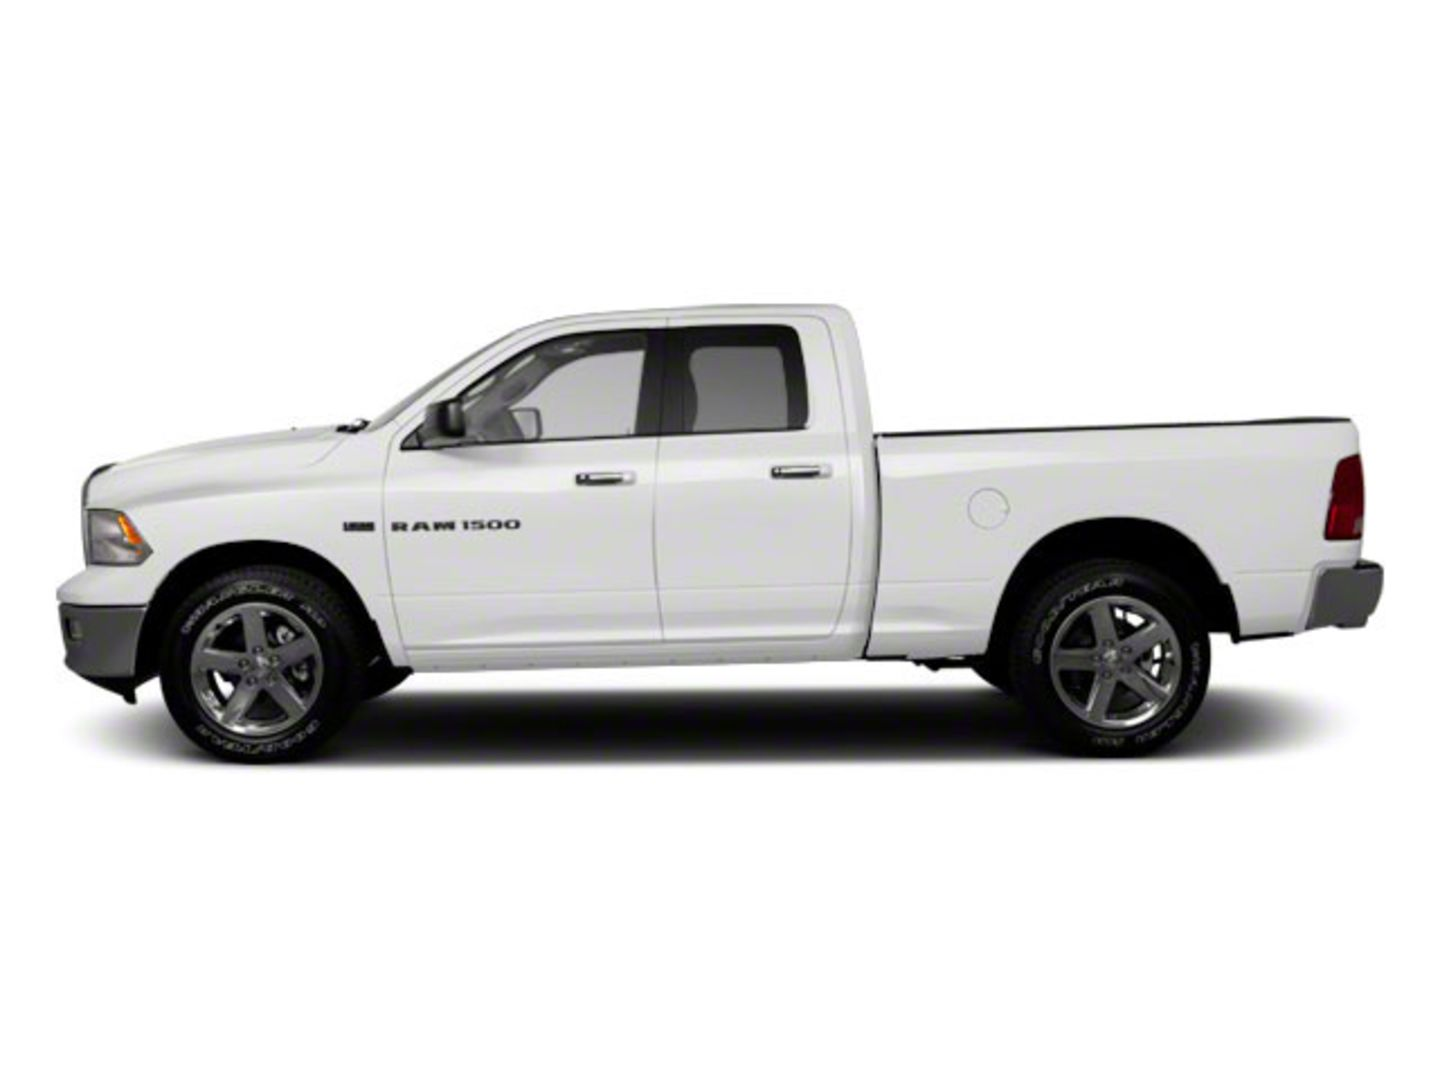 2010 Dodge Ram 1500 Laramie for sale in Peace River, Alberta